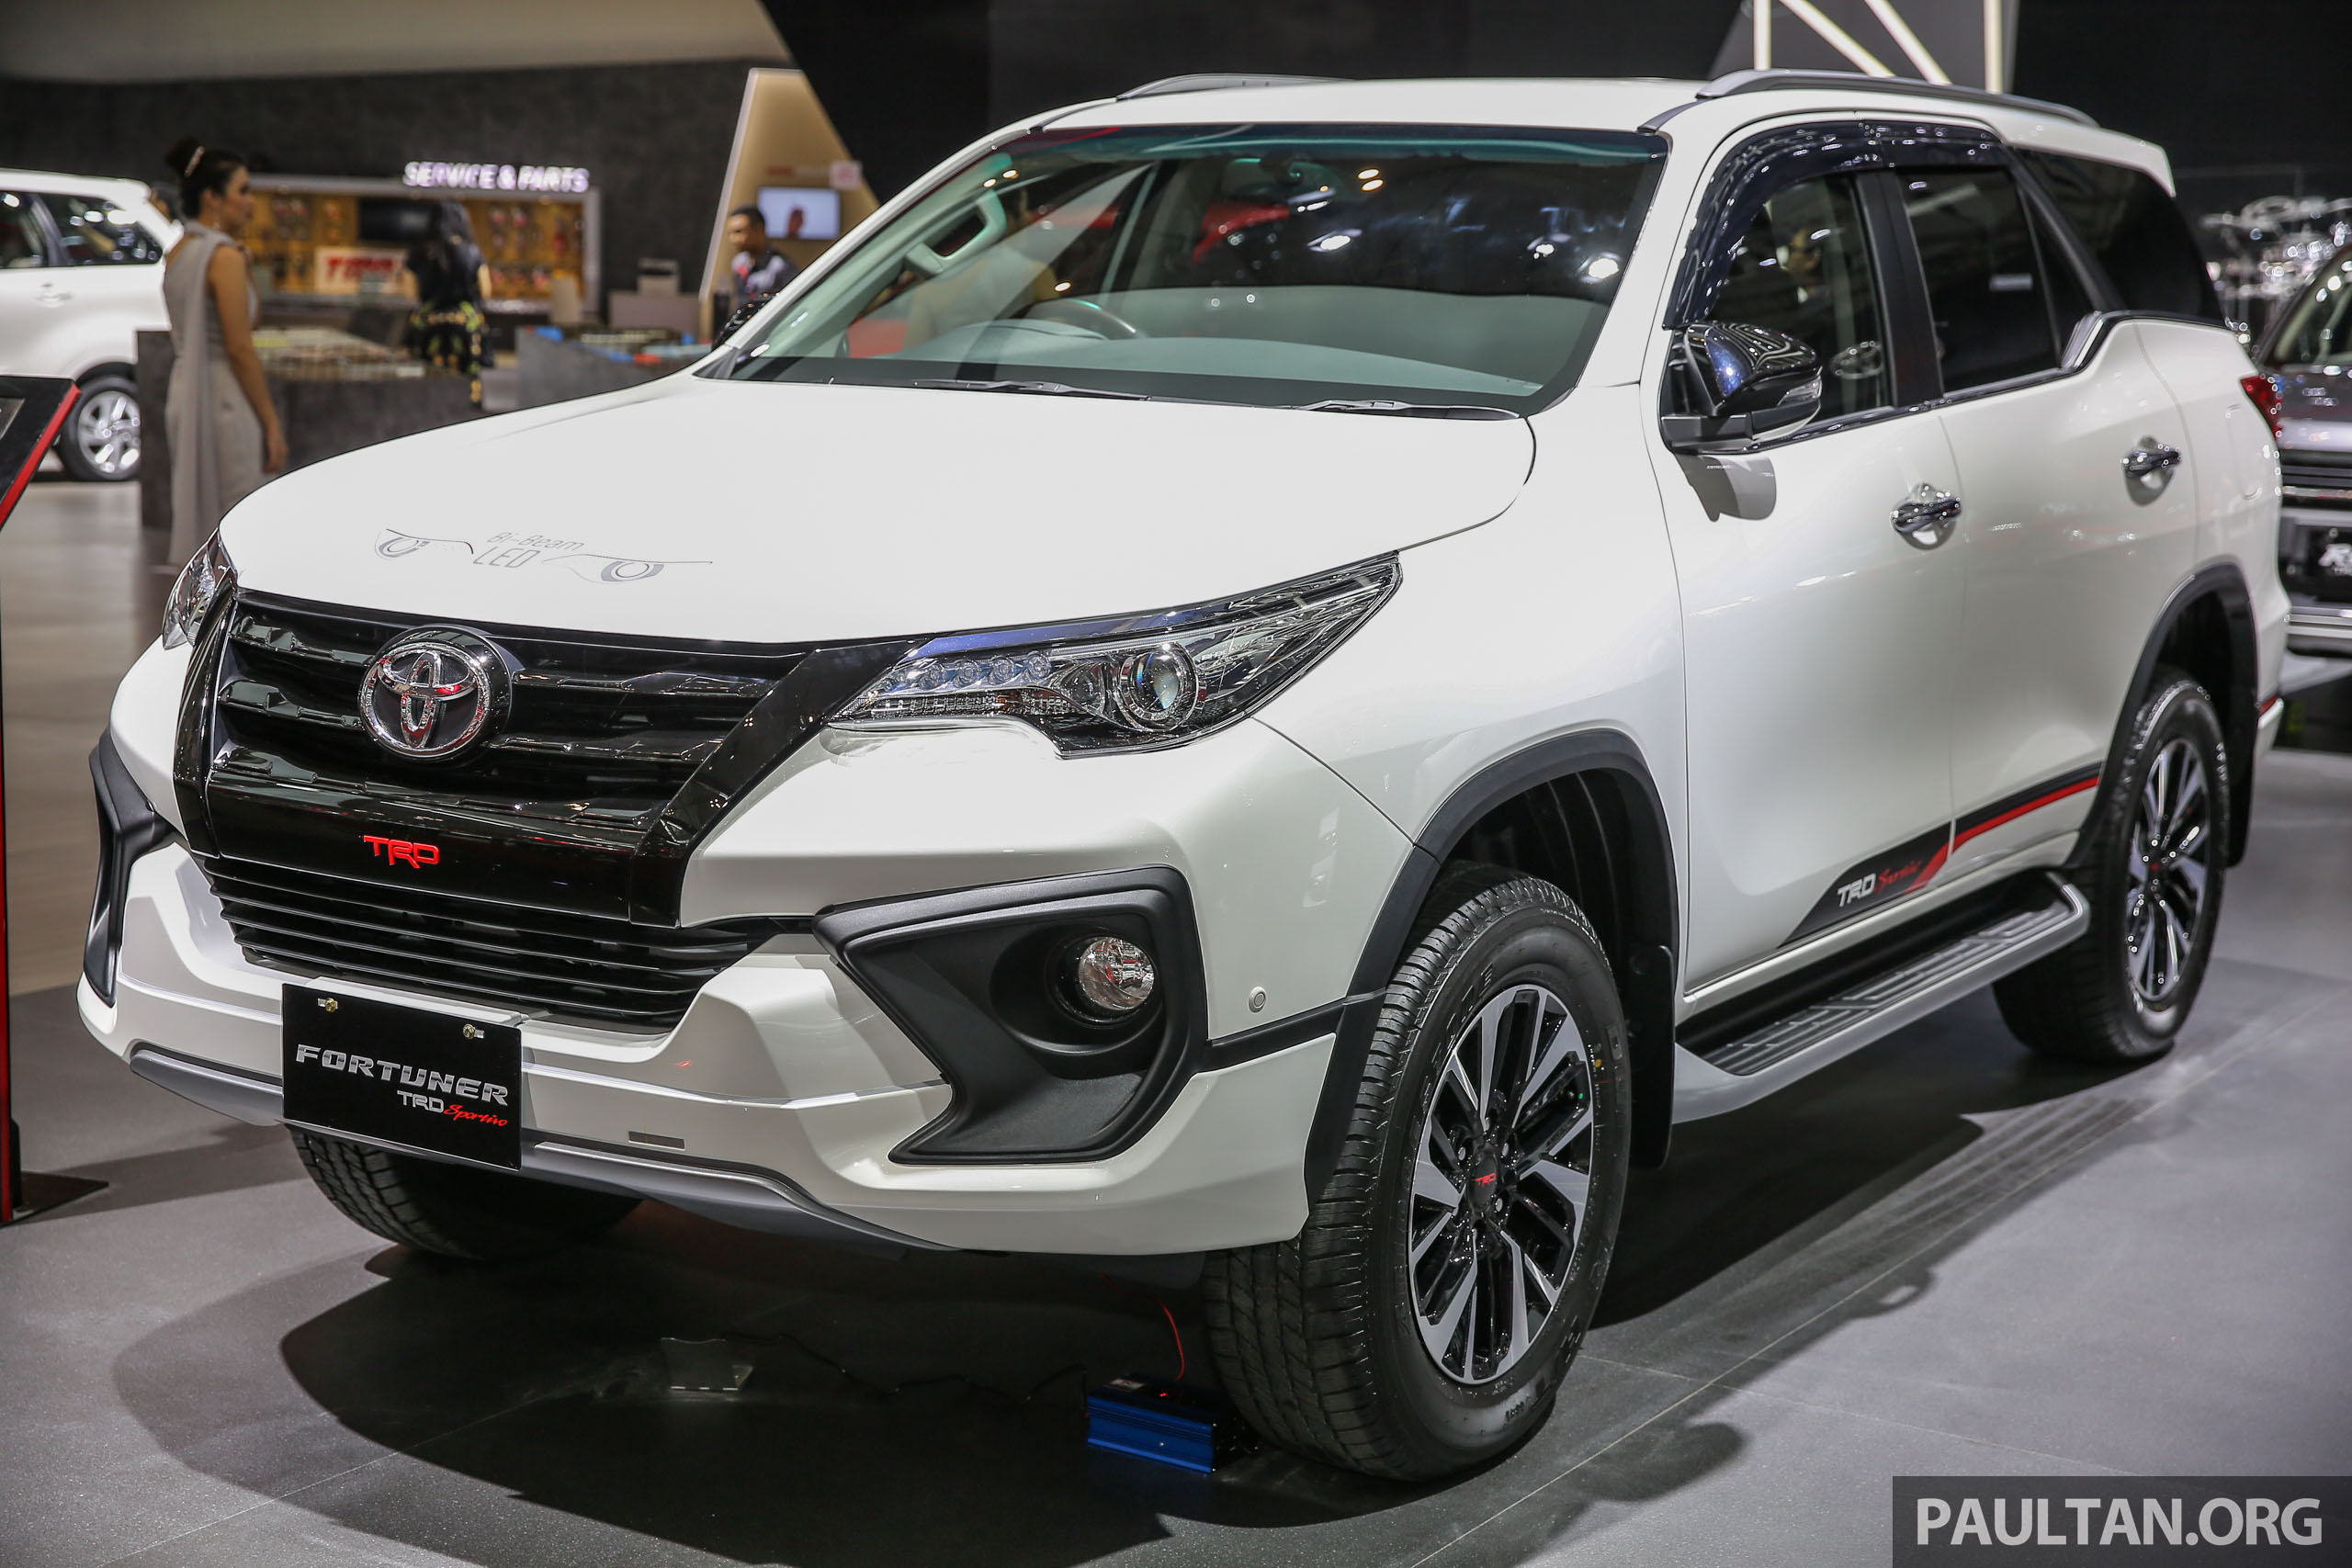 toyota yaris trd sportivo specs all new camry white giias 2017 fortuner indo spec